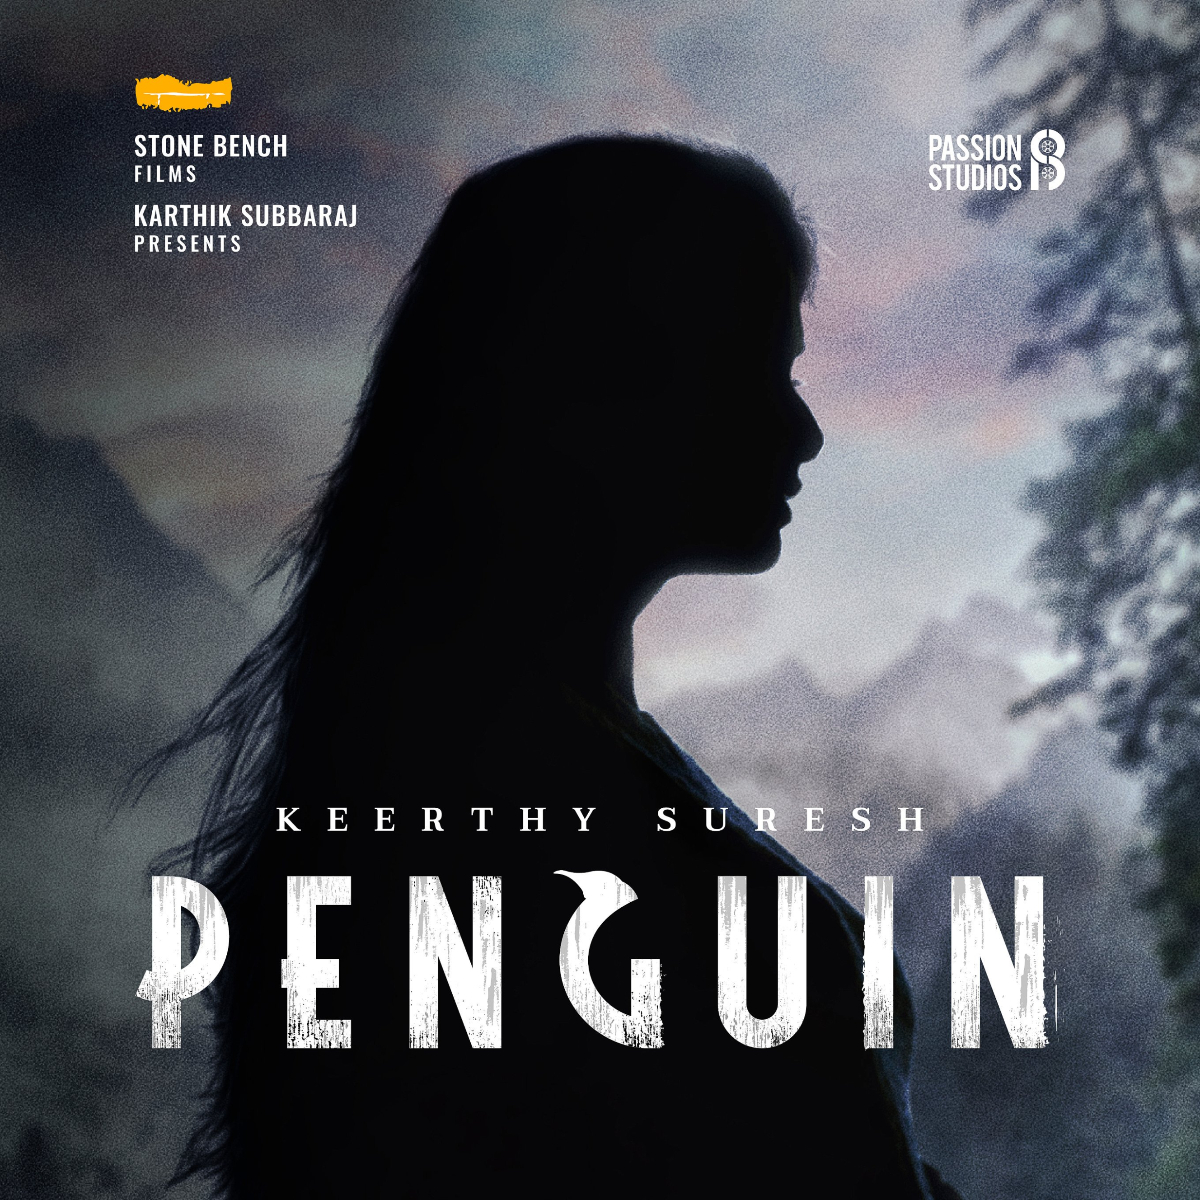 Penguin First Look: Keerthy Suresh's film produced by Karthik Subbaraj is full of intriguing elements